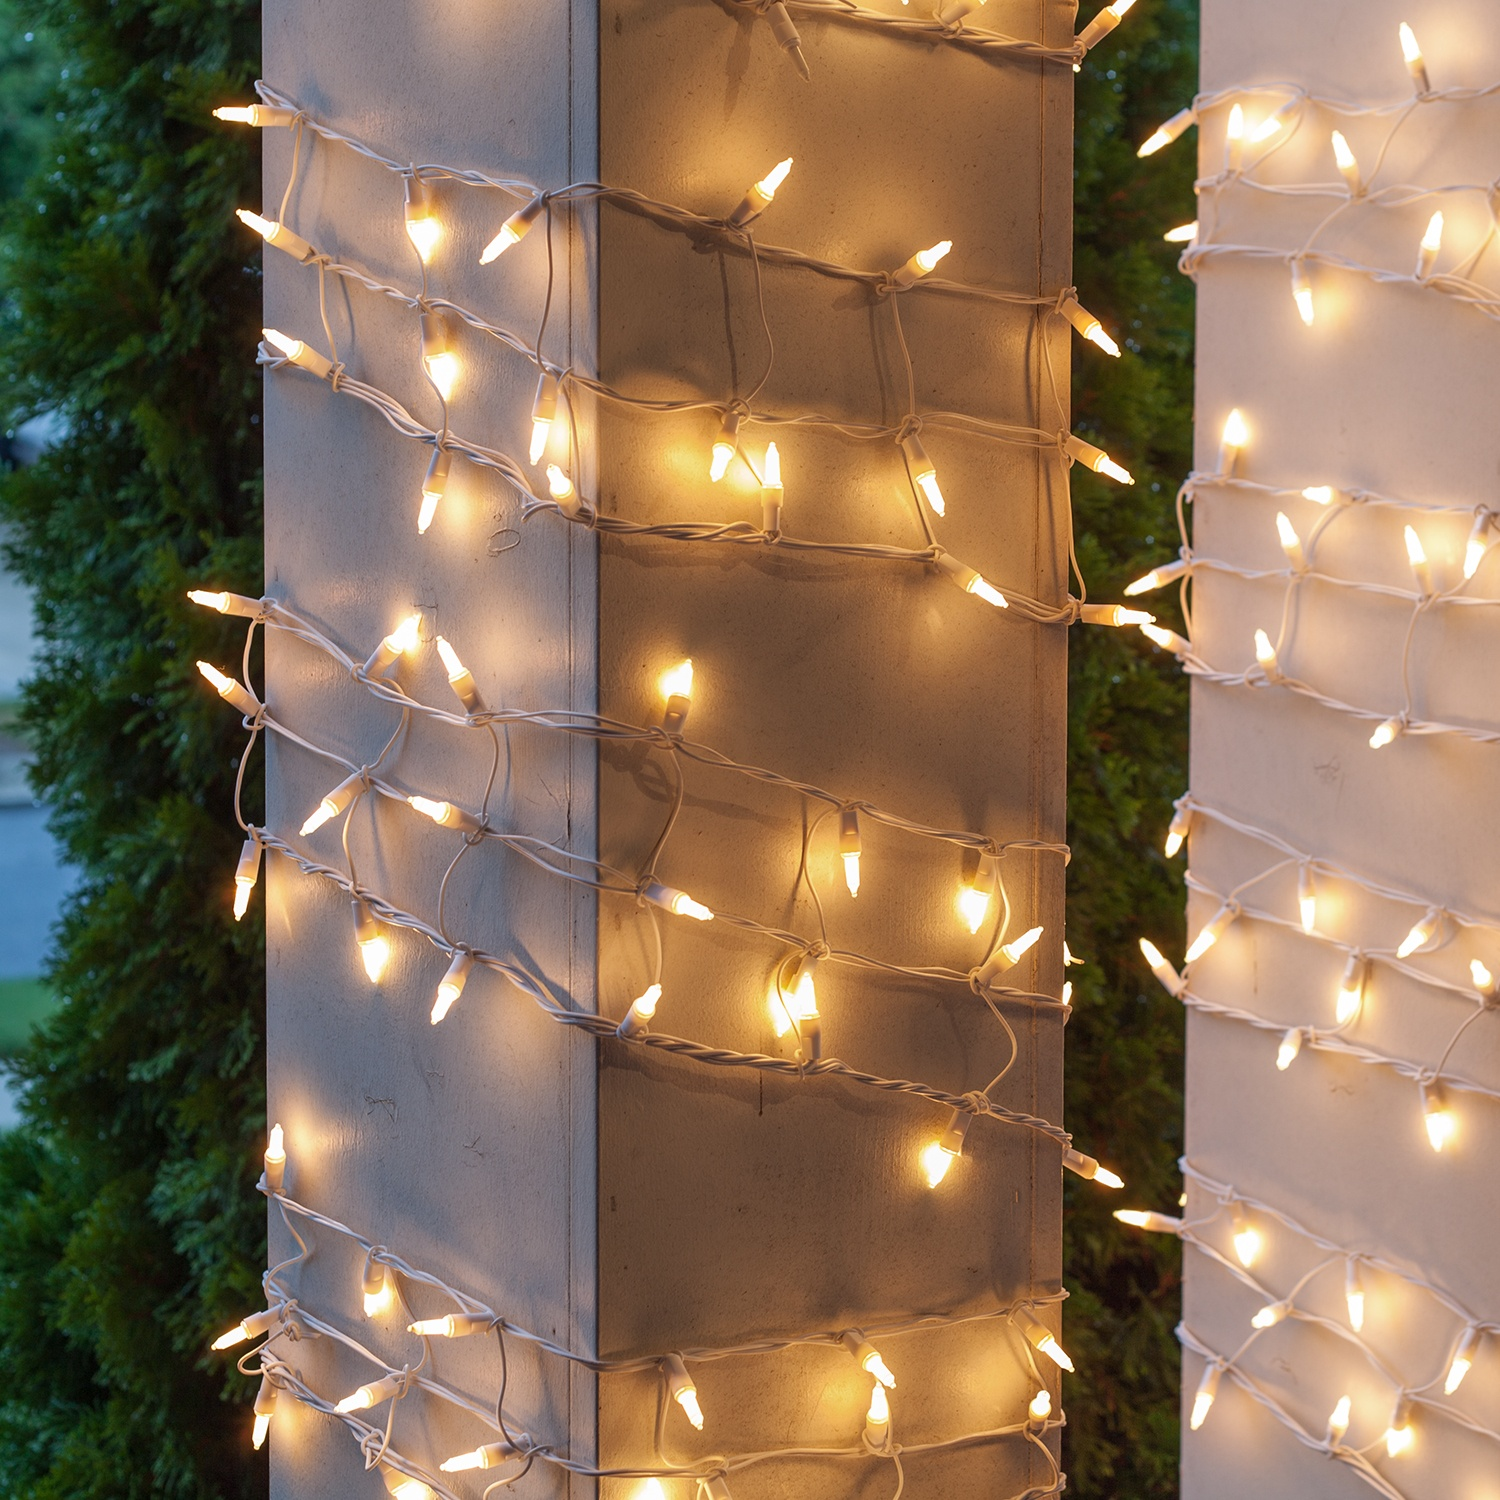 christmas net lights 6 w x 15 h column wrap 150 white frost lights white wire